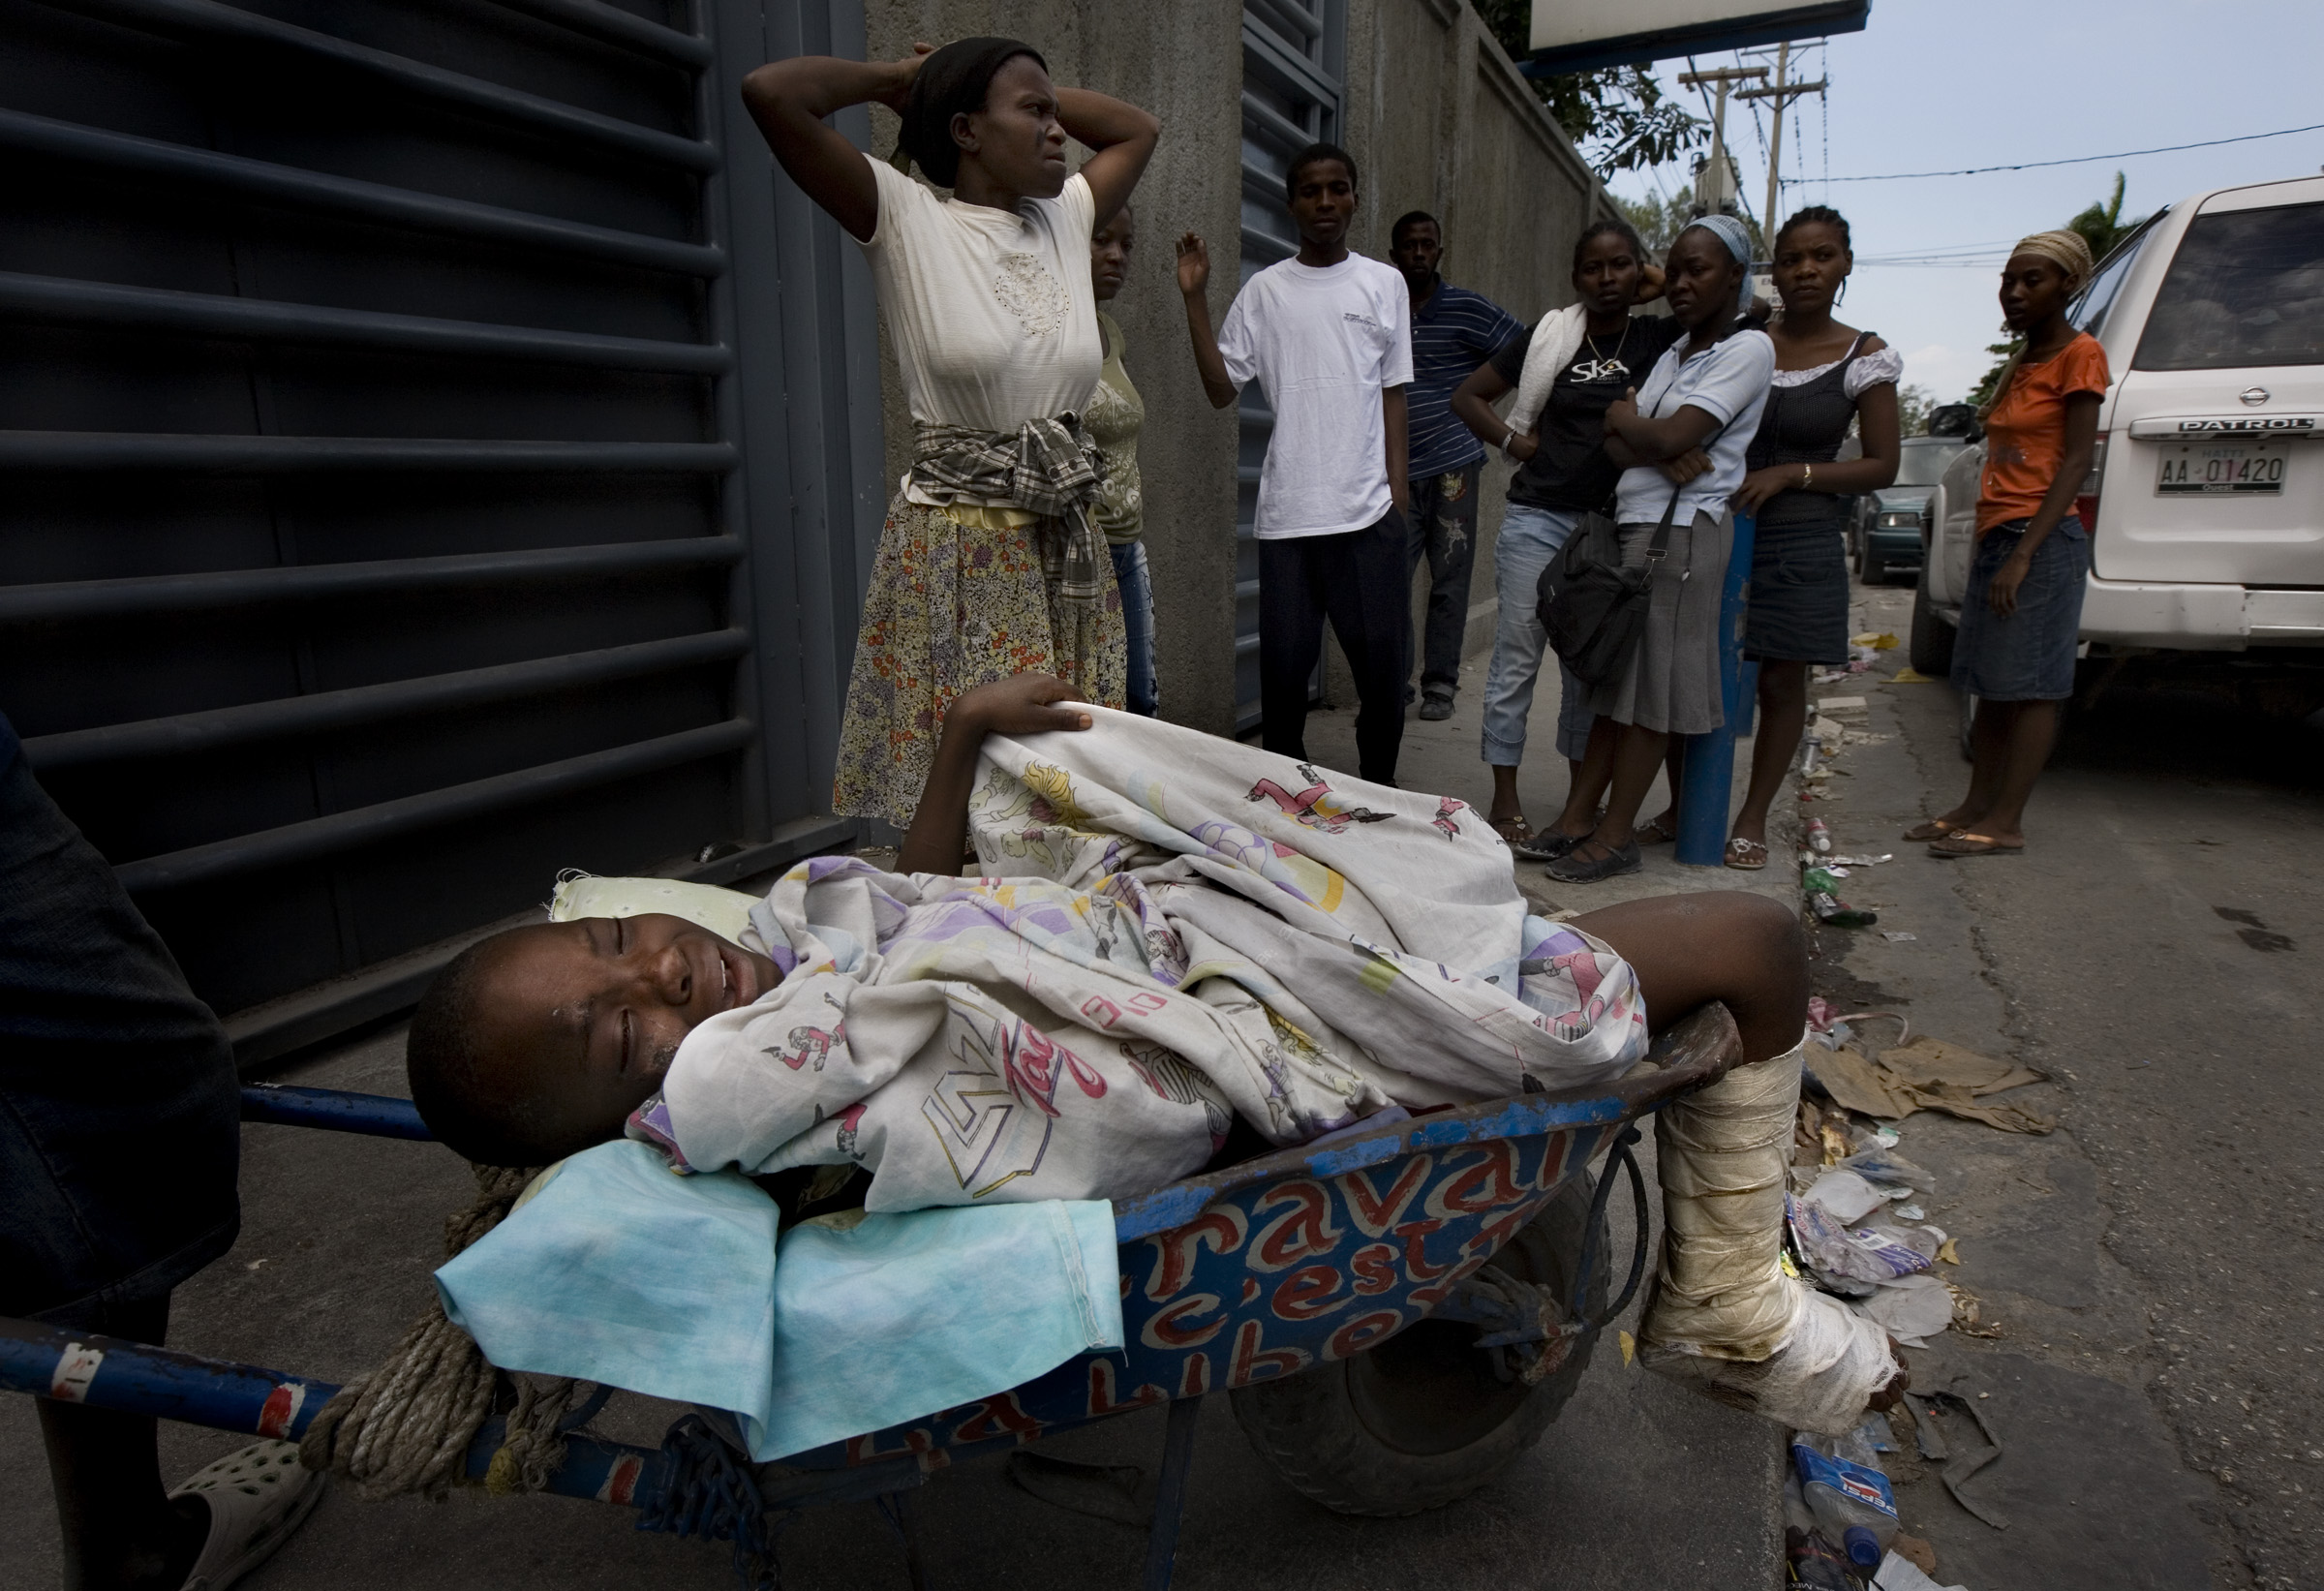 A young boy was carried in wheelbarrow by his family to a clinic for medical treatment outside of Port-au-Prince.